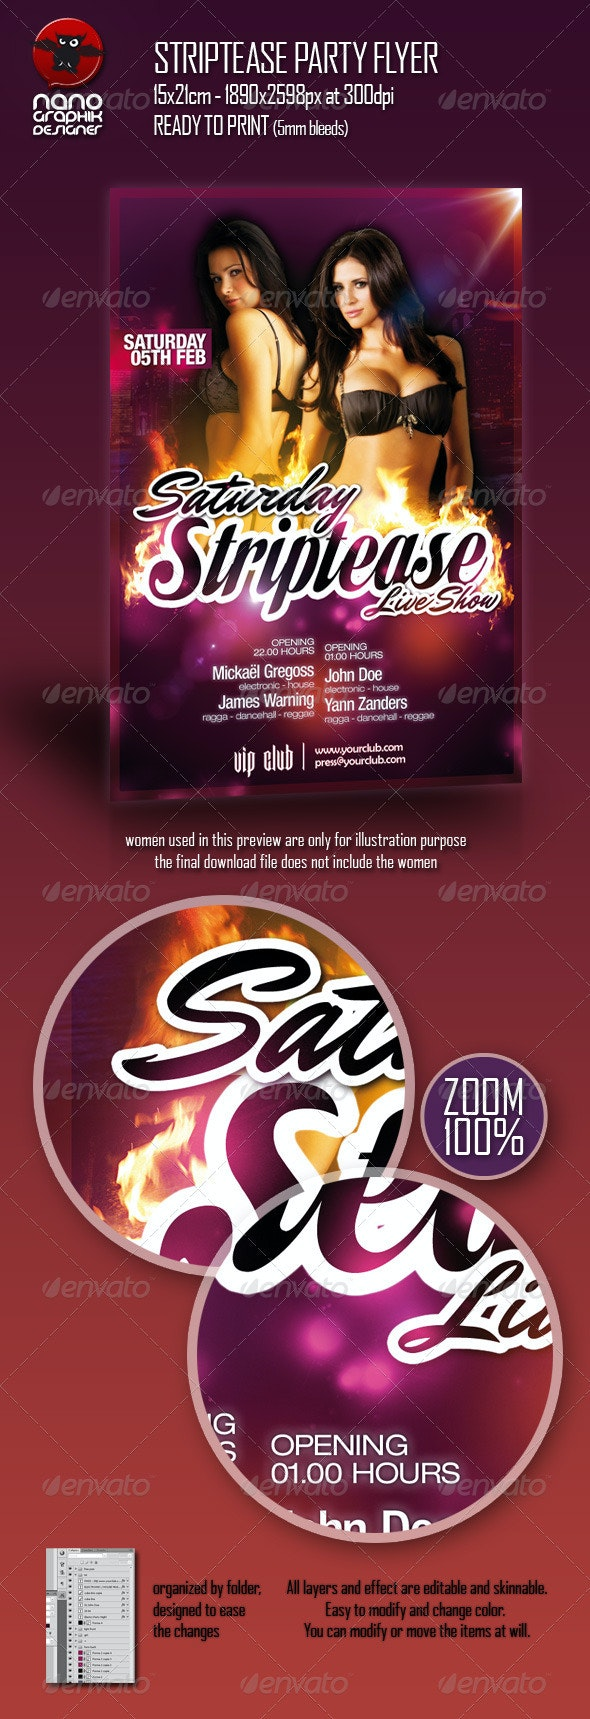 Striptease Party Flyer - Clubs & Parties Events